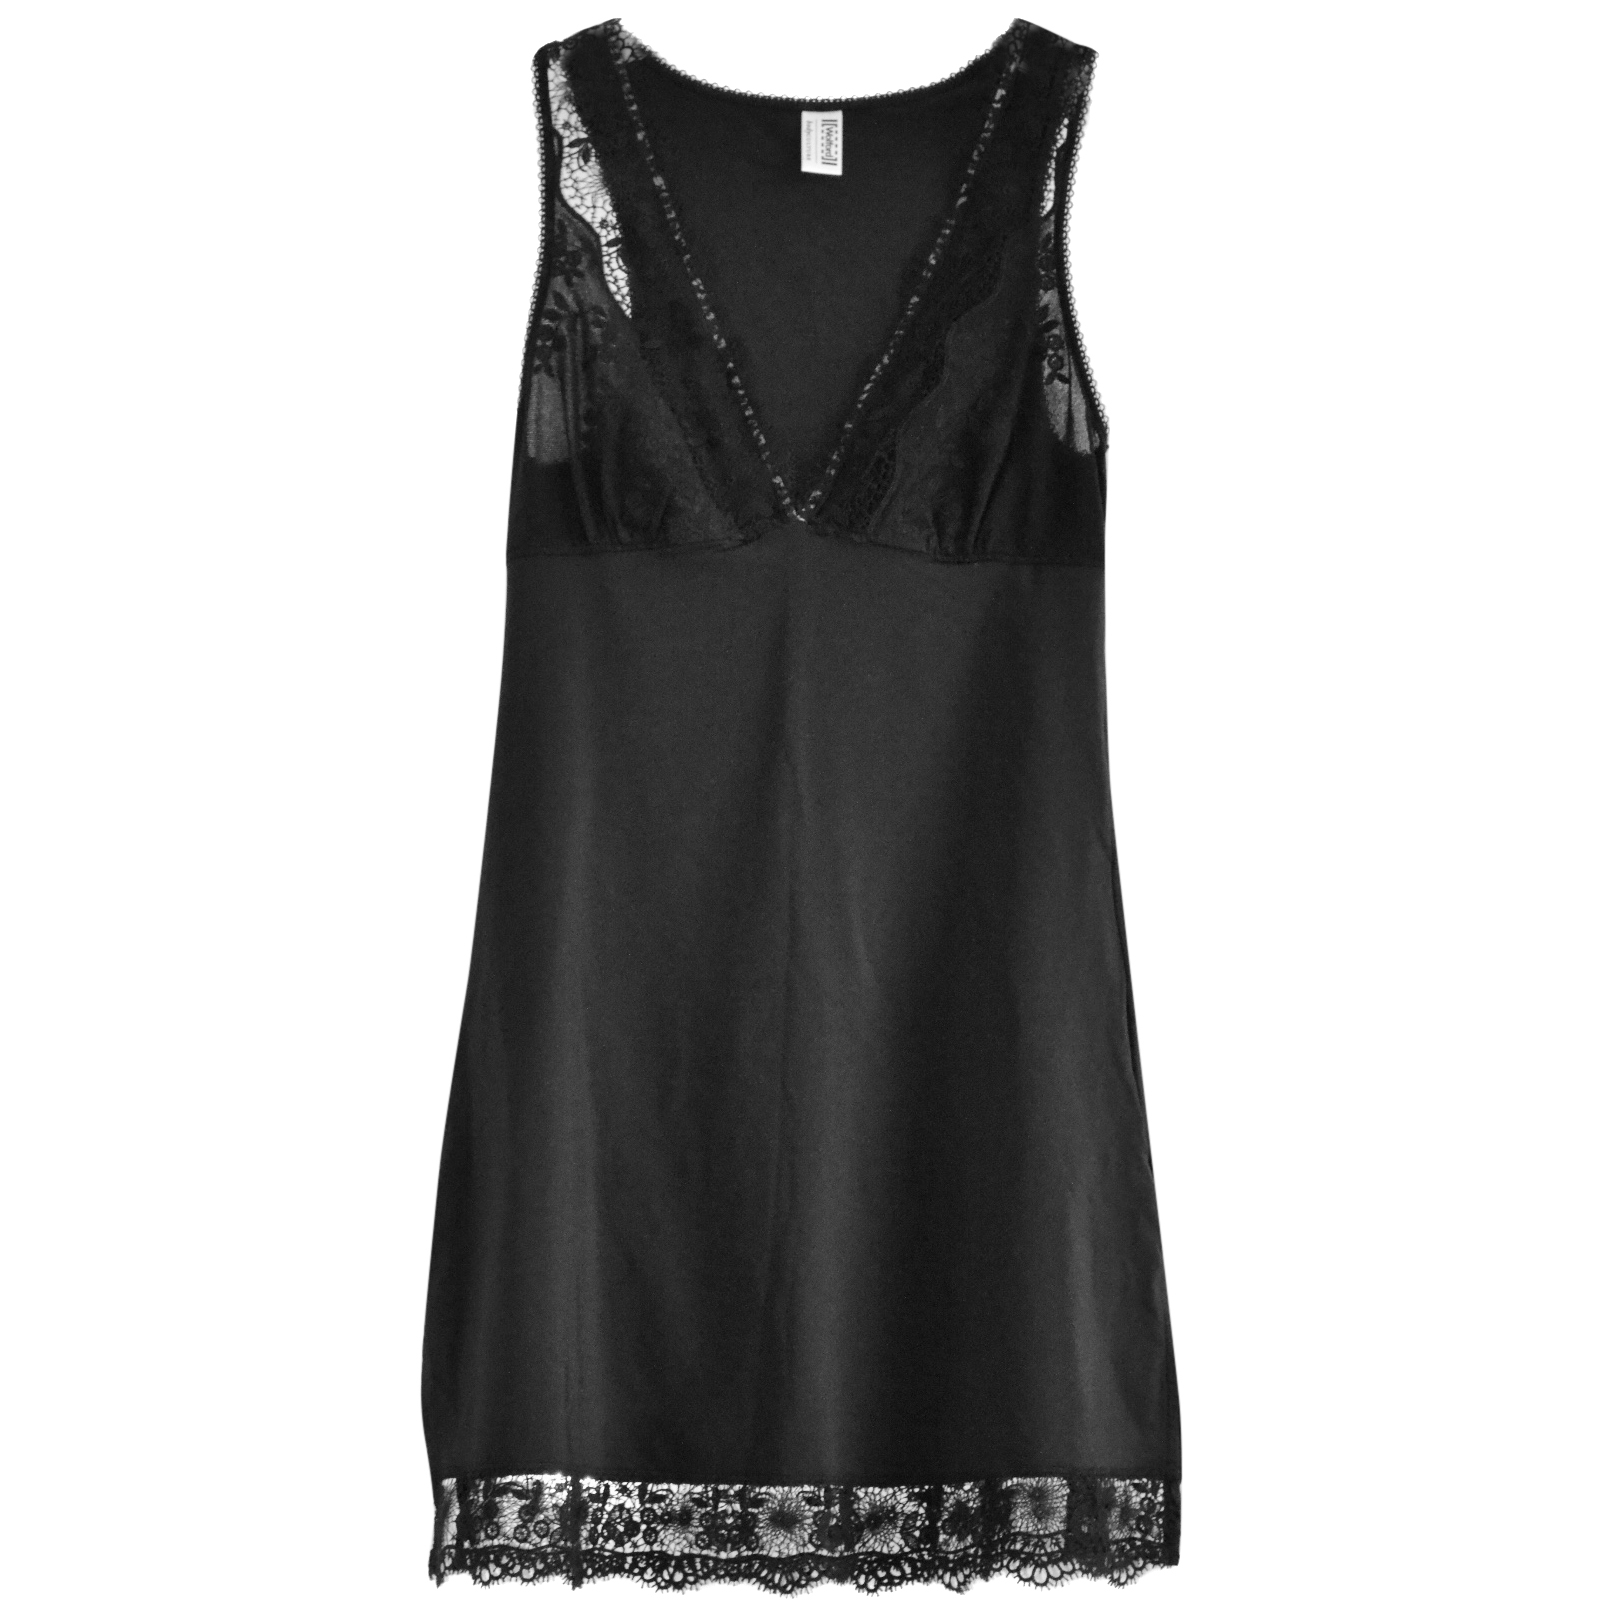 Wolford lace-trimmed slip dress